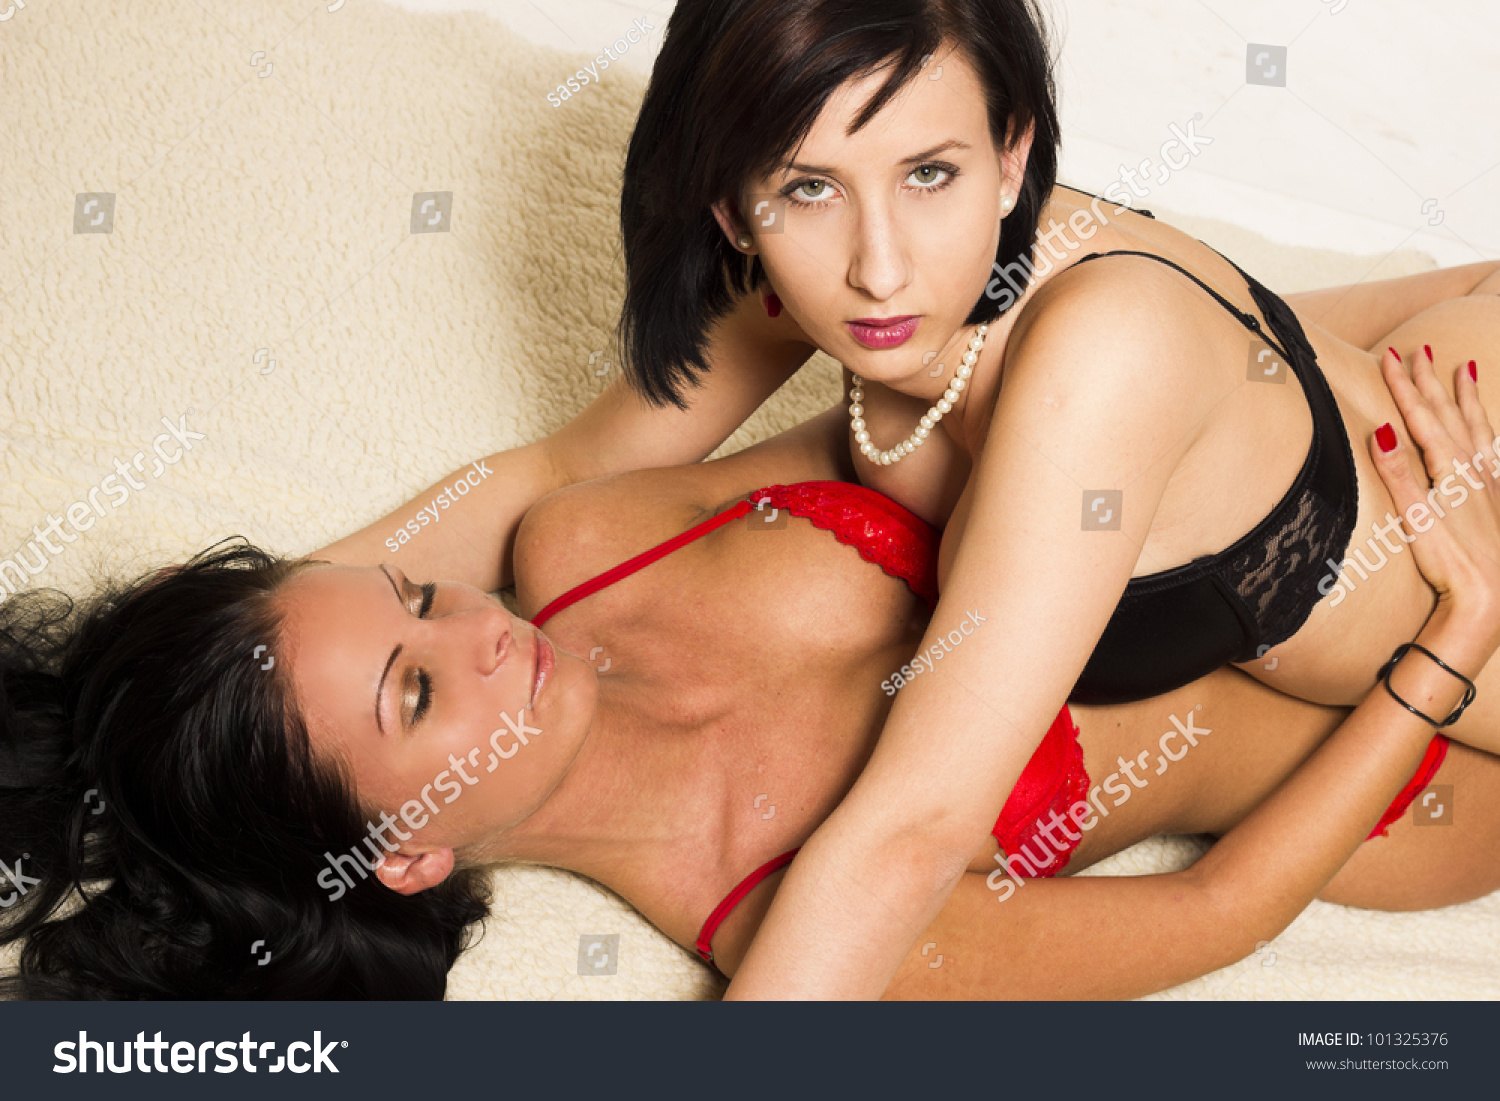 Sexy lesbians playing with each other